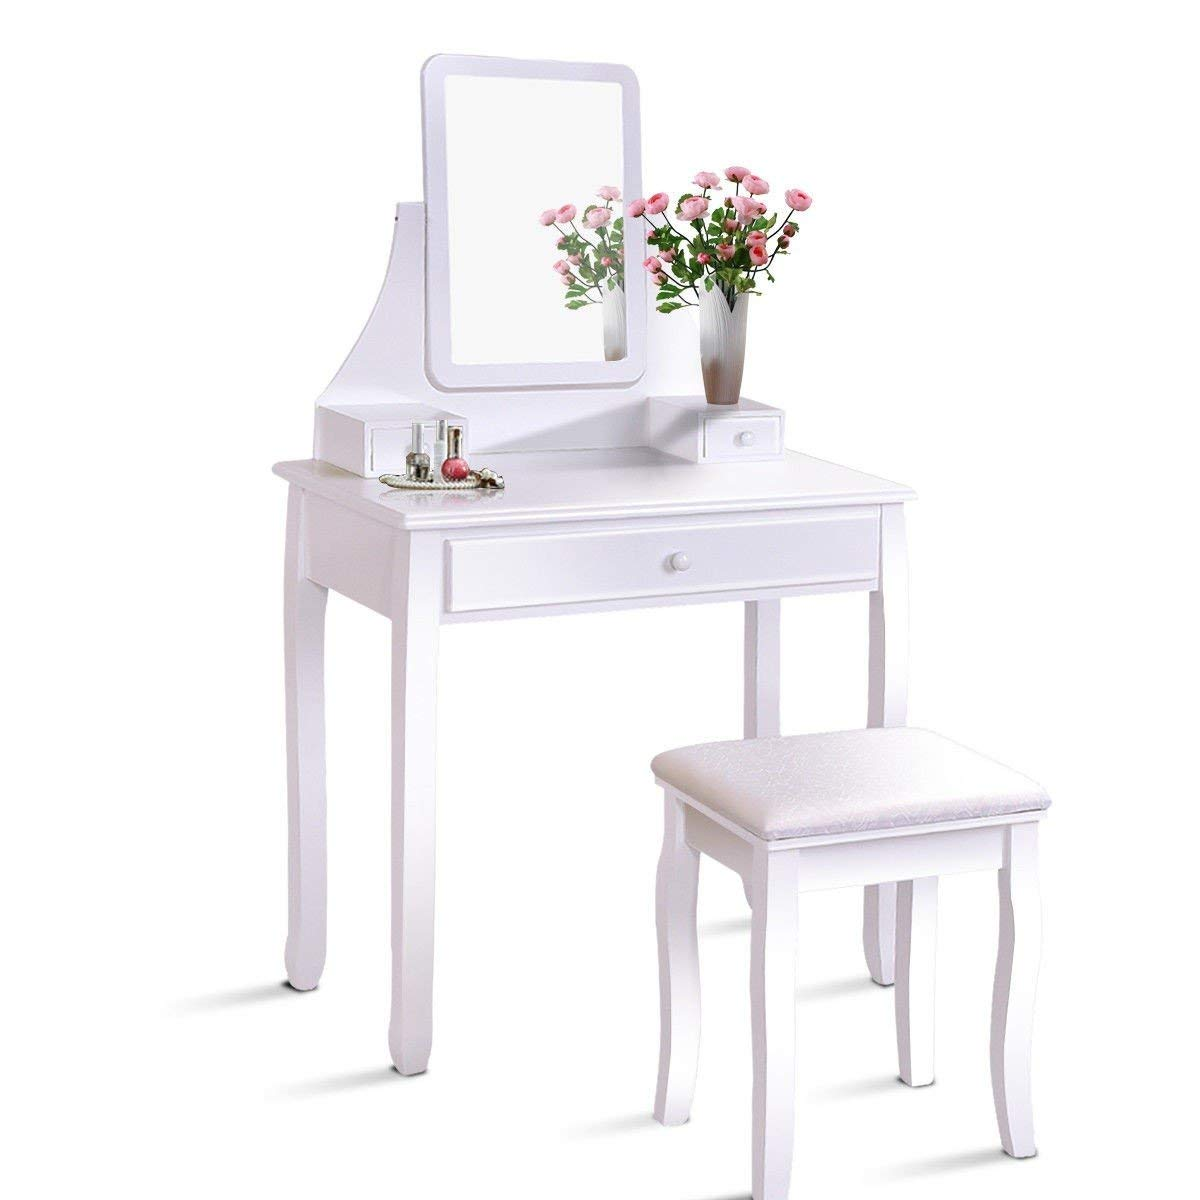 Cheap Vintage Dressing Table Mirror Find Vintage Dressing Table Mirror Deals On Line At Alibaba Com